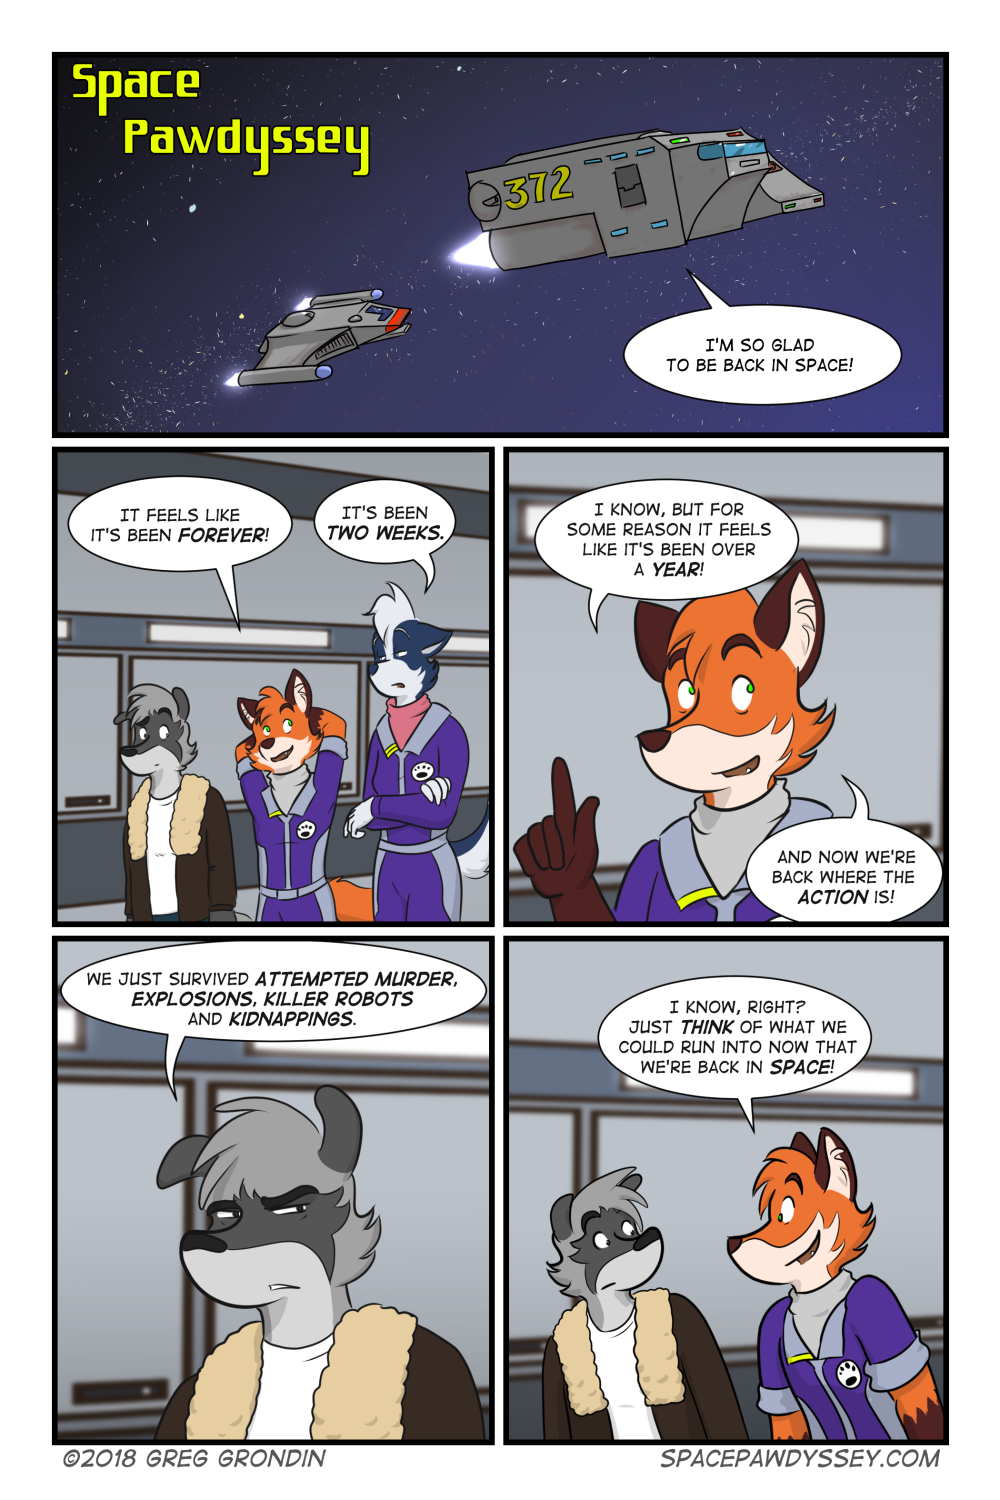 Space Pawdyssey #213